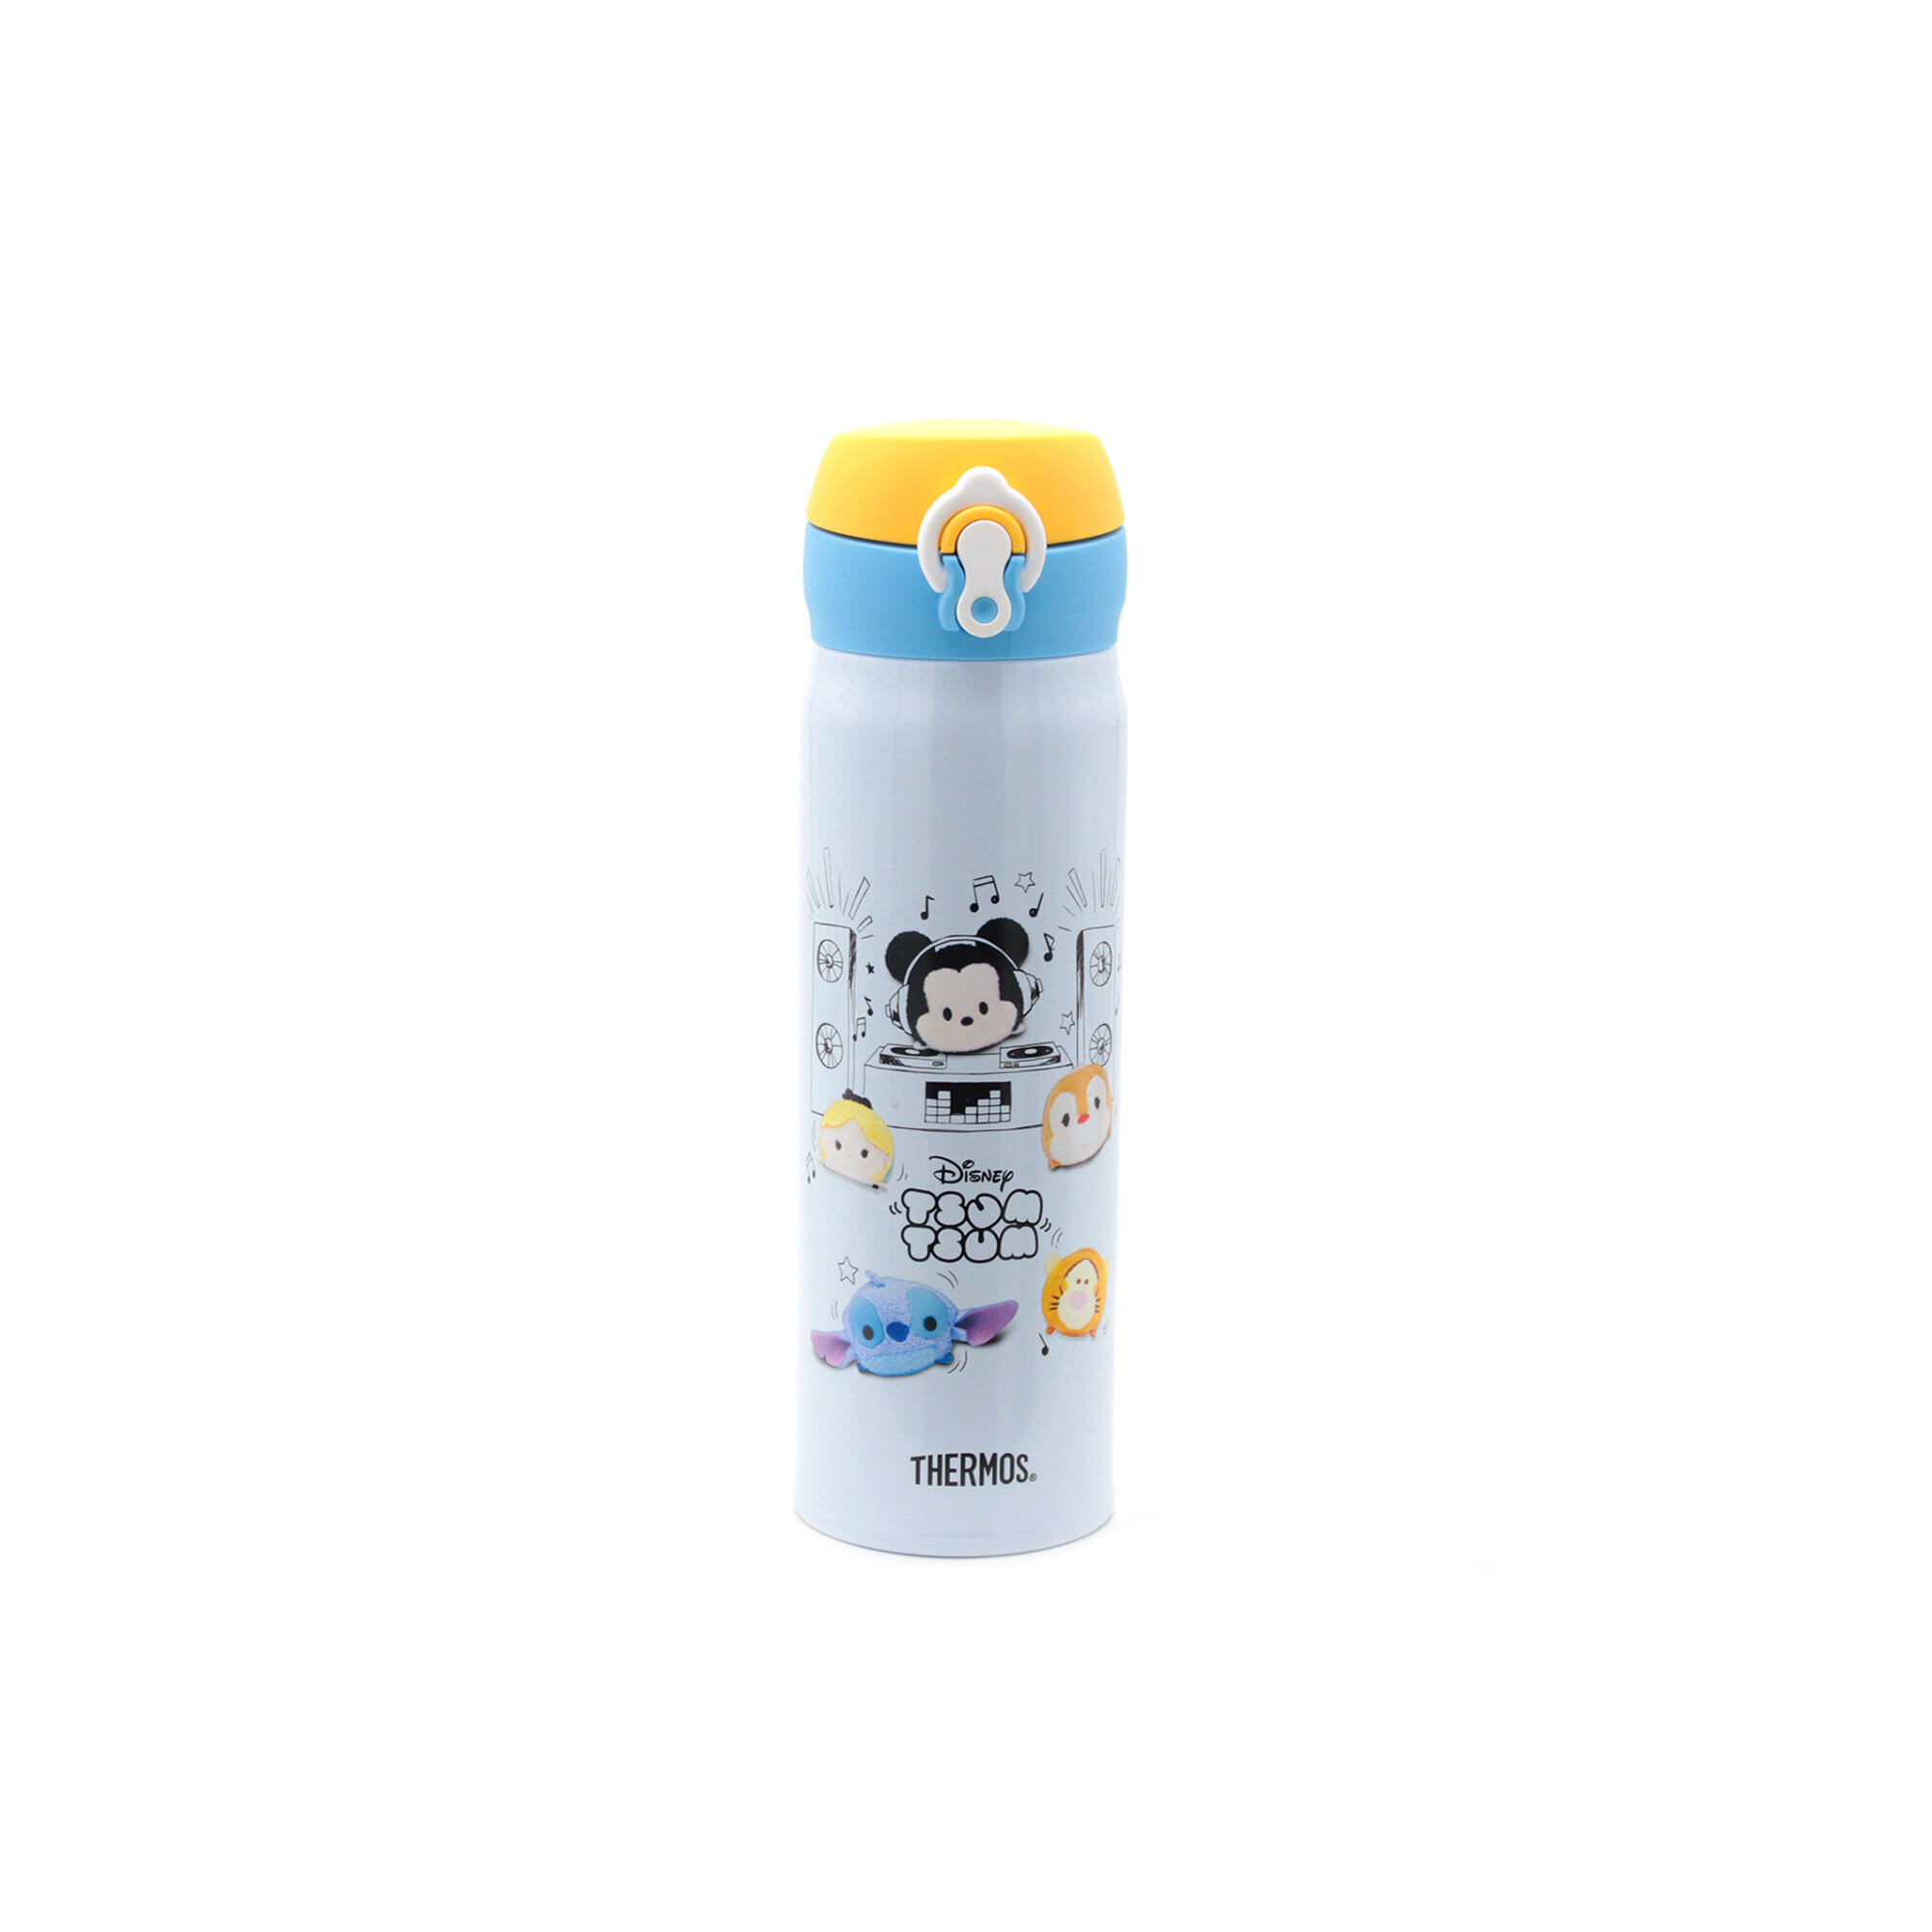 Disney Tsum Tsum 500Ml Thermos Stainless Steel Ultra Light Flask - Blue Mix Yellow Colour